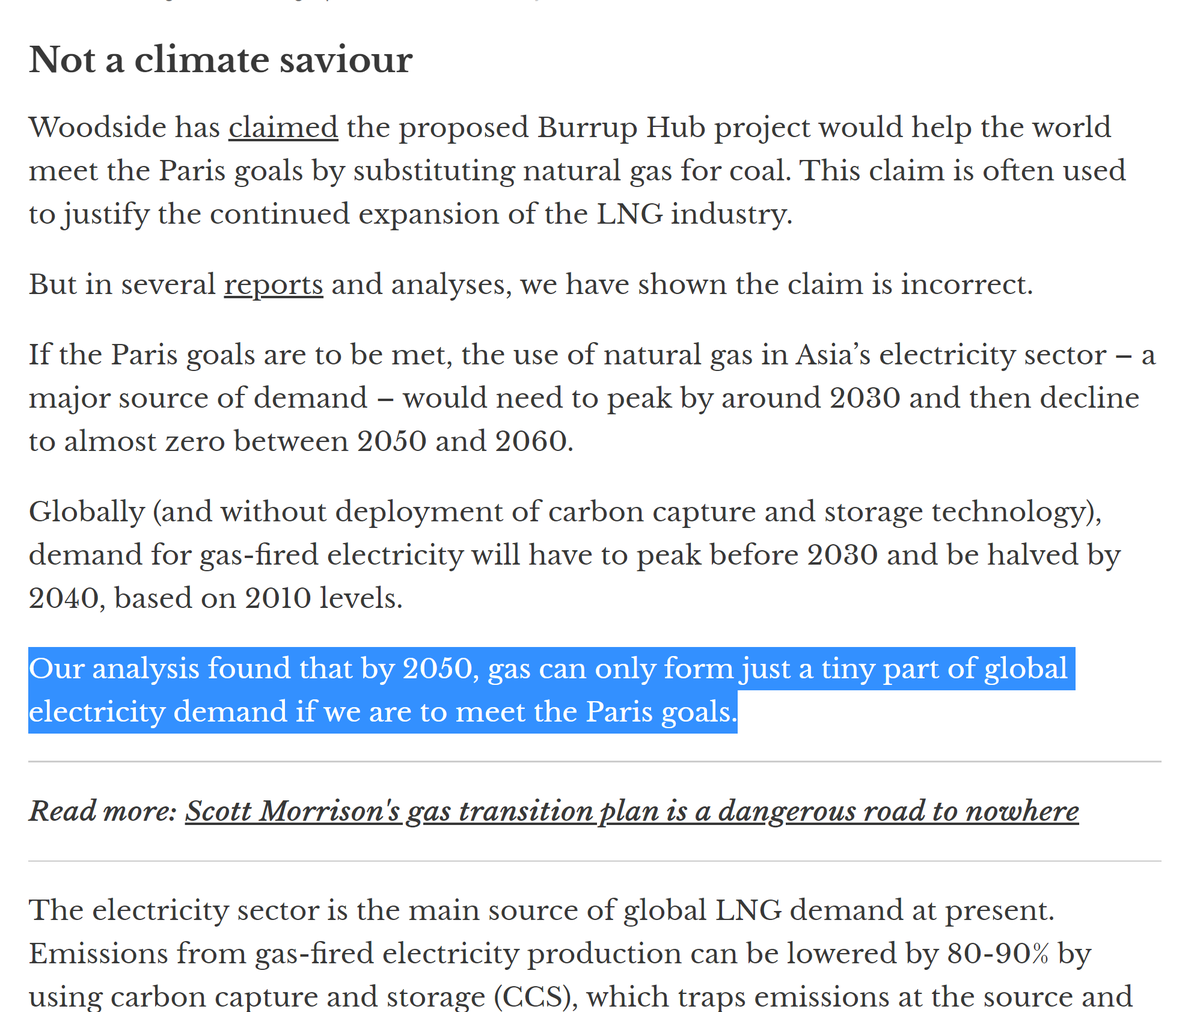 Appendix 2 - this great  @BillHareClimate piece showing how Woodside Energy's new Burrup Hub fossil gas extraction scheme would eat up 7-10% (!!!!!) of Aus' 2018-2050 carbon budget. Jeez. Some eye-opening stats here:  https://theconversation.com/a-single-mega-project-exposes-the-morrison-governments-gas-plan-as-staggering-folly-133435?utm_source=twitter&utm_medium=organic